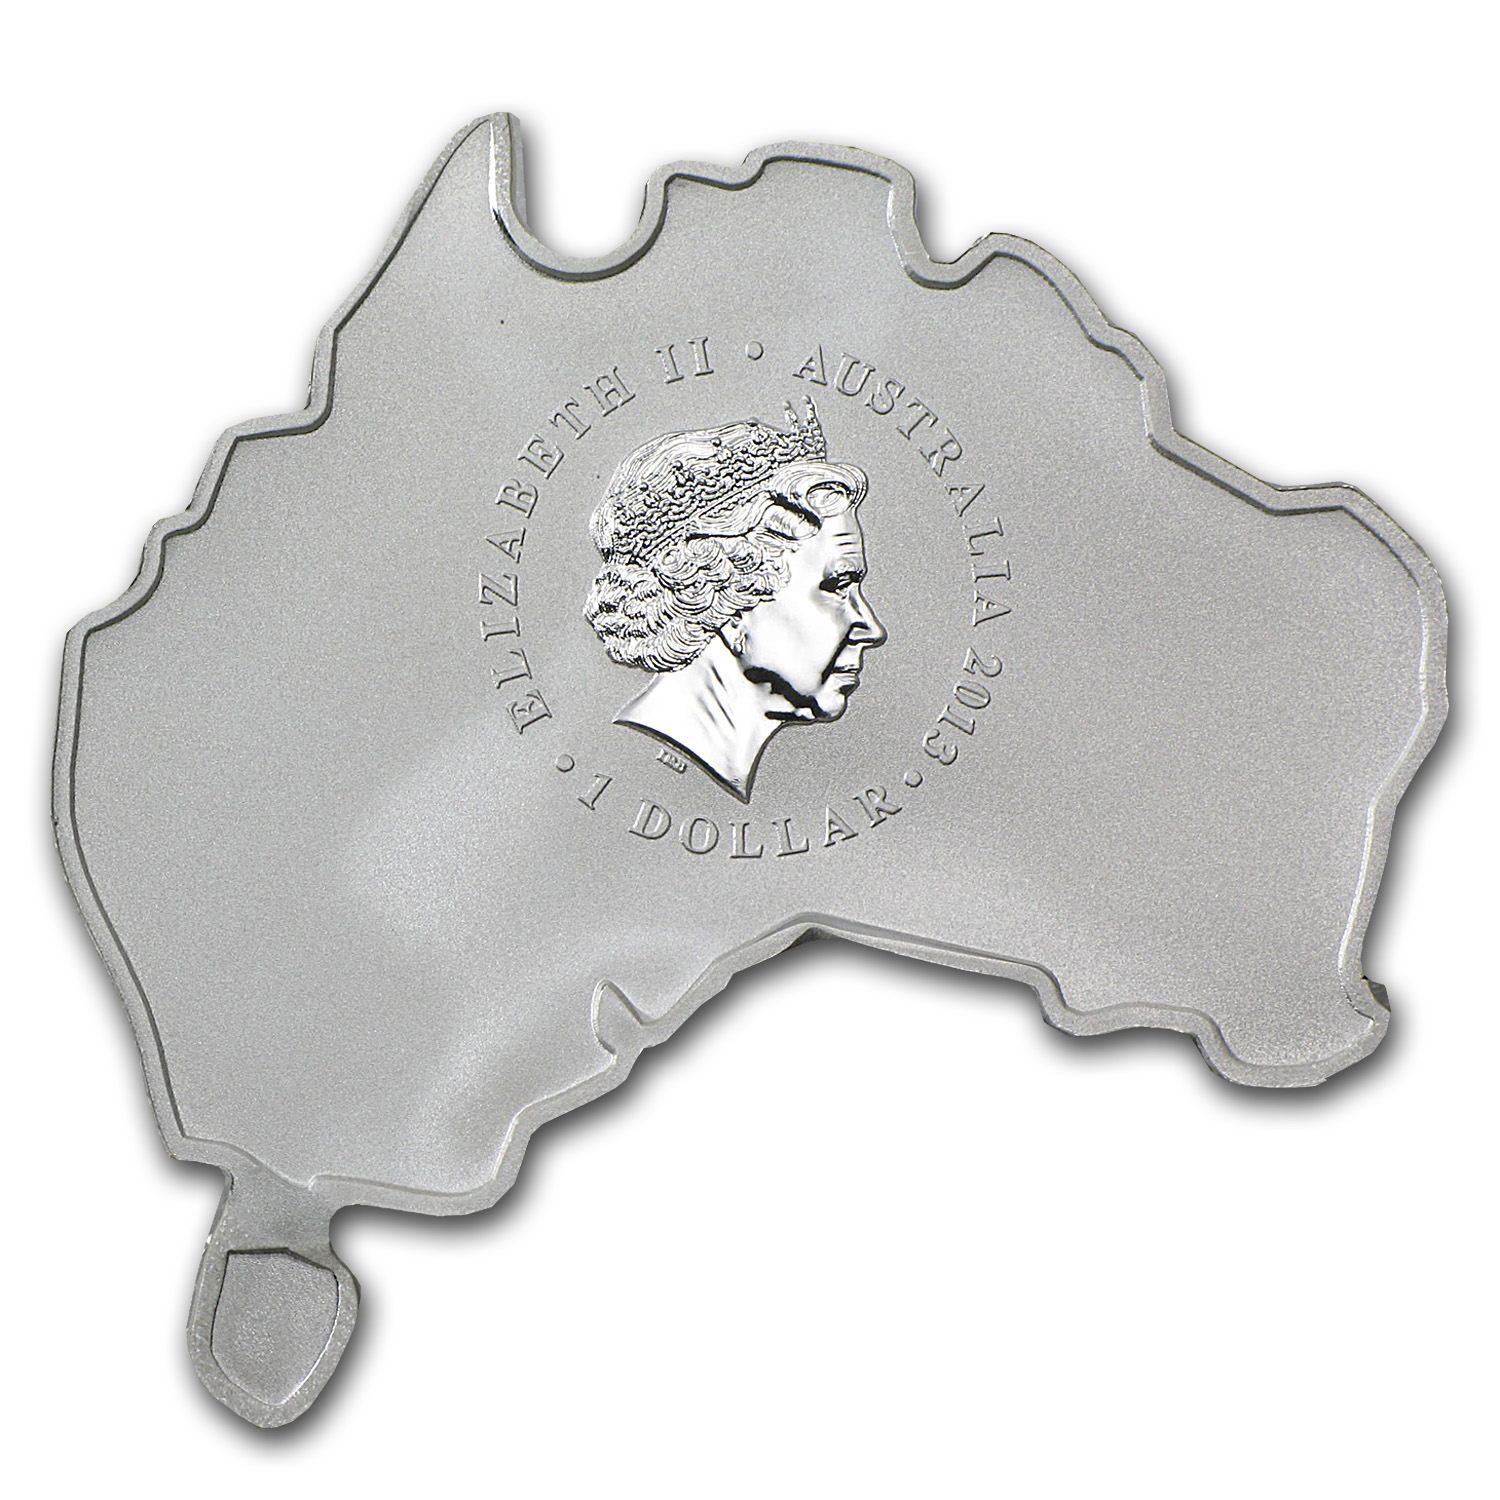 2013 Australia 1 oz Silver Platypus (Map Shape)